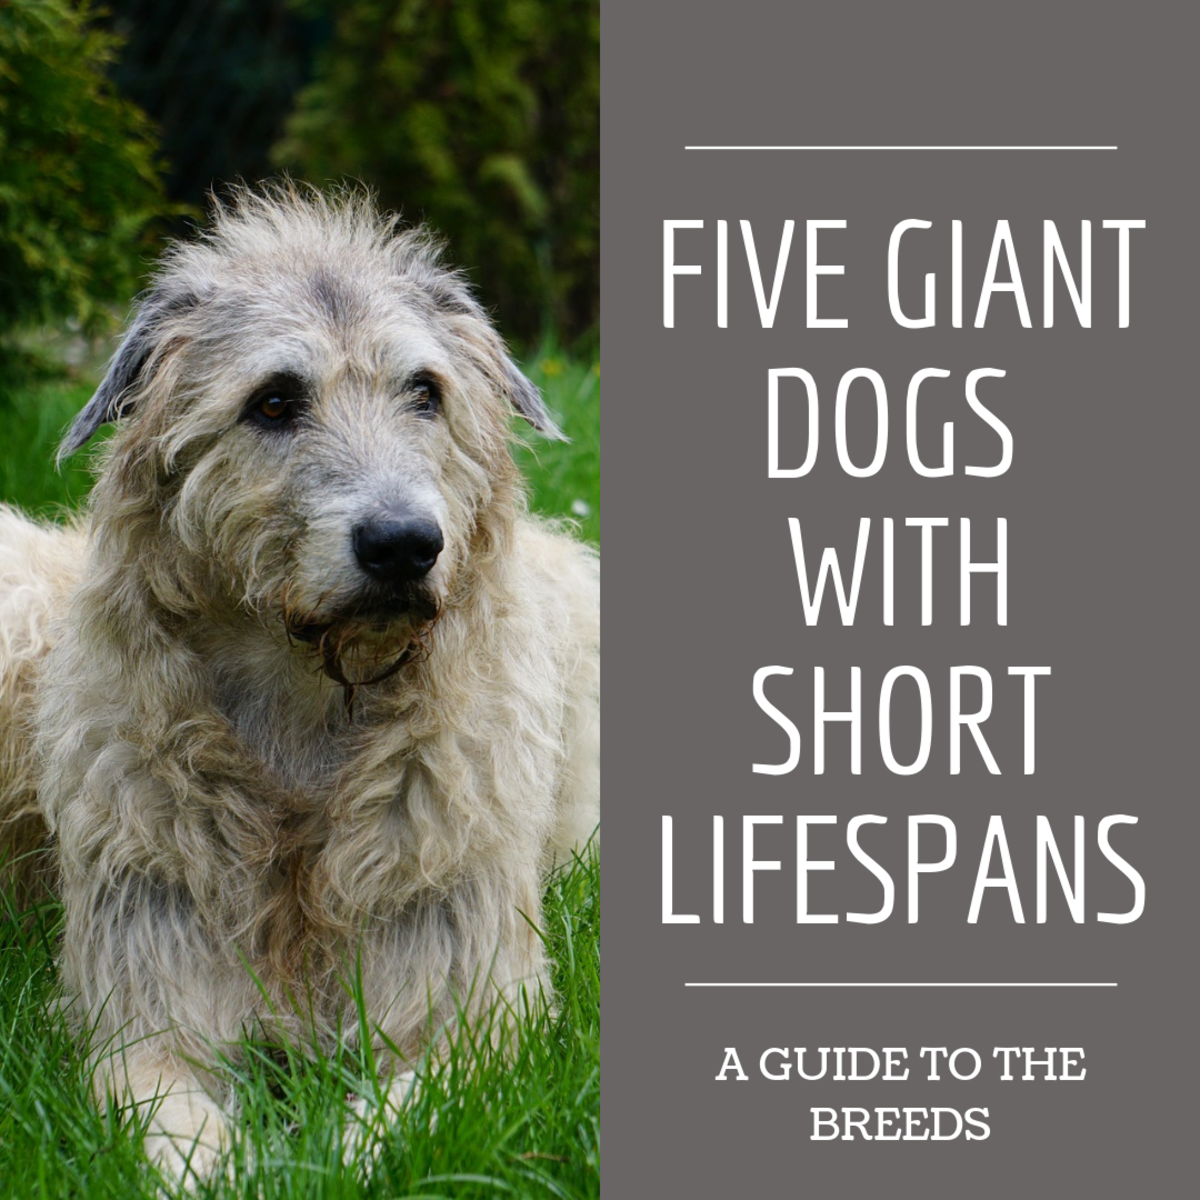 Five Giant Dog Breeds With Short Lifespans | PetHelpful